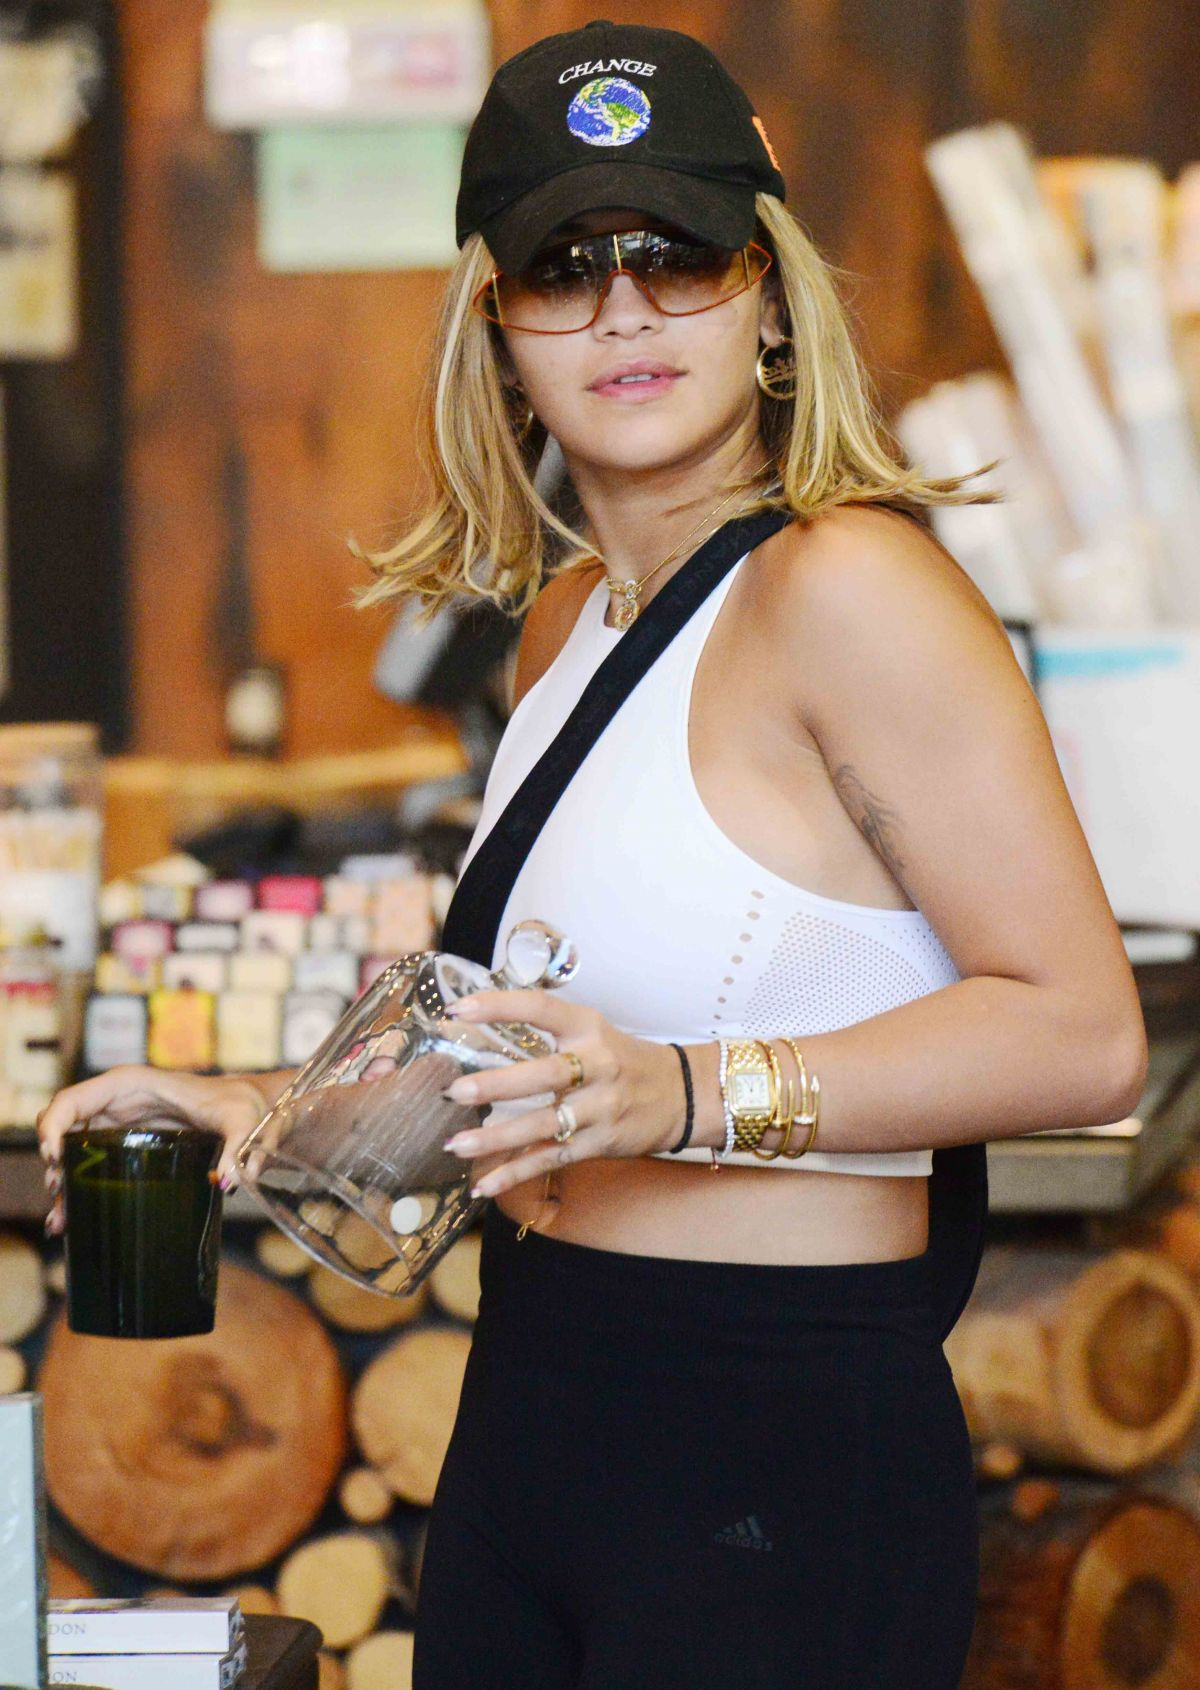 Rita Ora Shopping in West Hollywood   rita-ora-shopping-in-west-hollywood_17